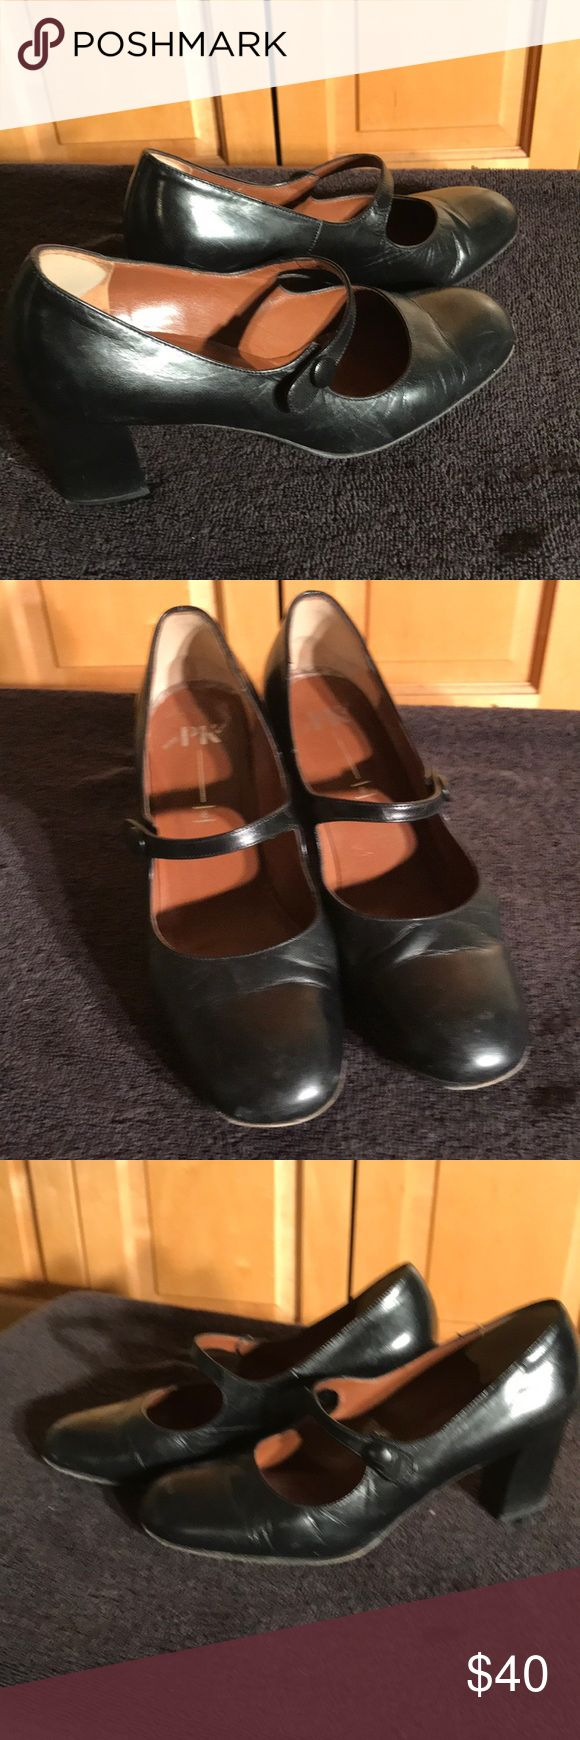 """Black Mary Janes Cute expensive black leather Mary Jane shoes made in Germany by Peter Kaiser. Straps are attached with elastic. Also leather sole. Heels measure 3"""" high. In good used condition. Peter Kaiser Shoes Heels"""